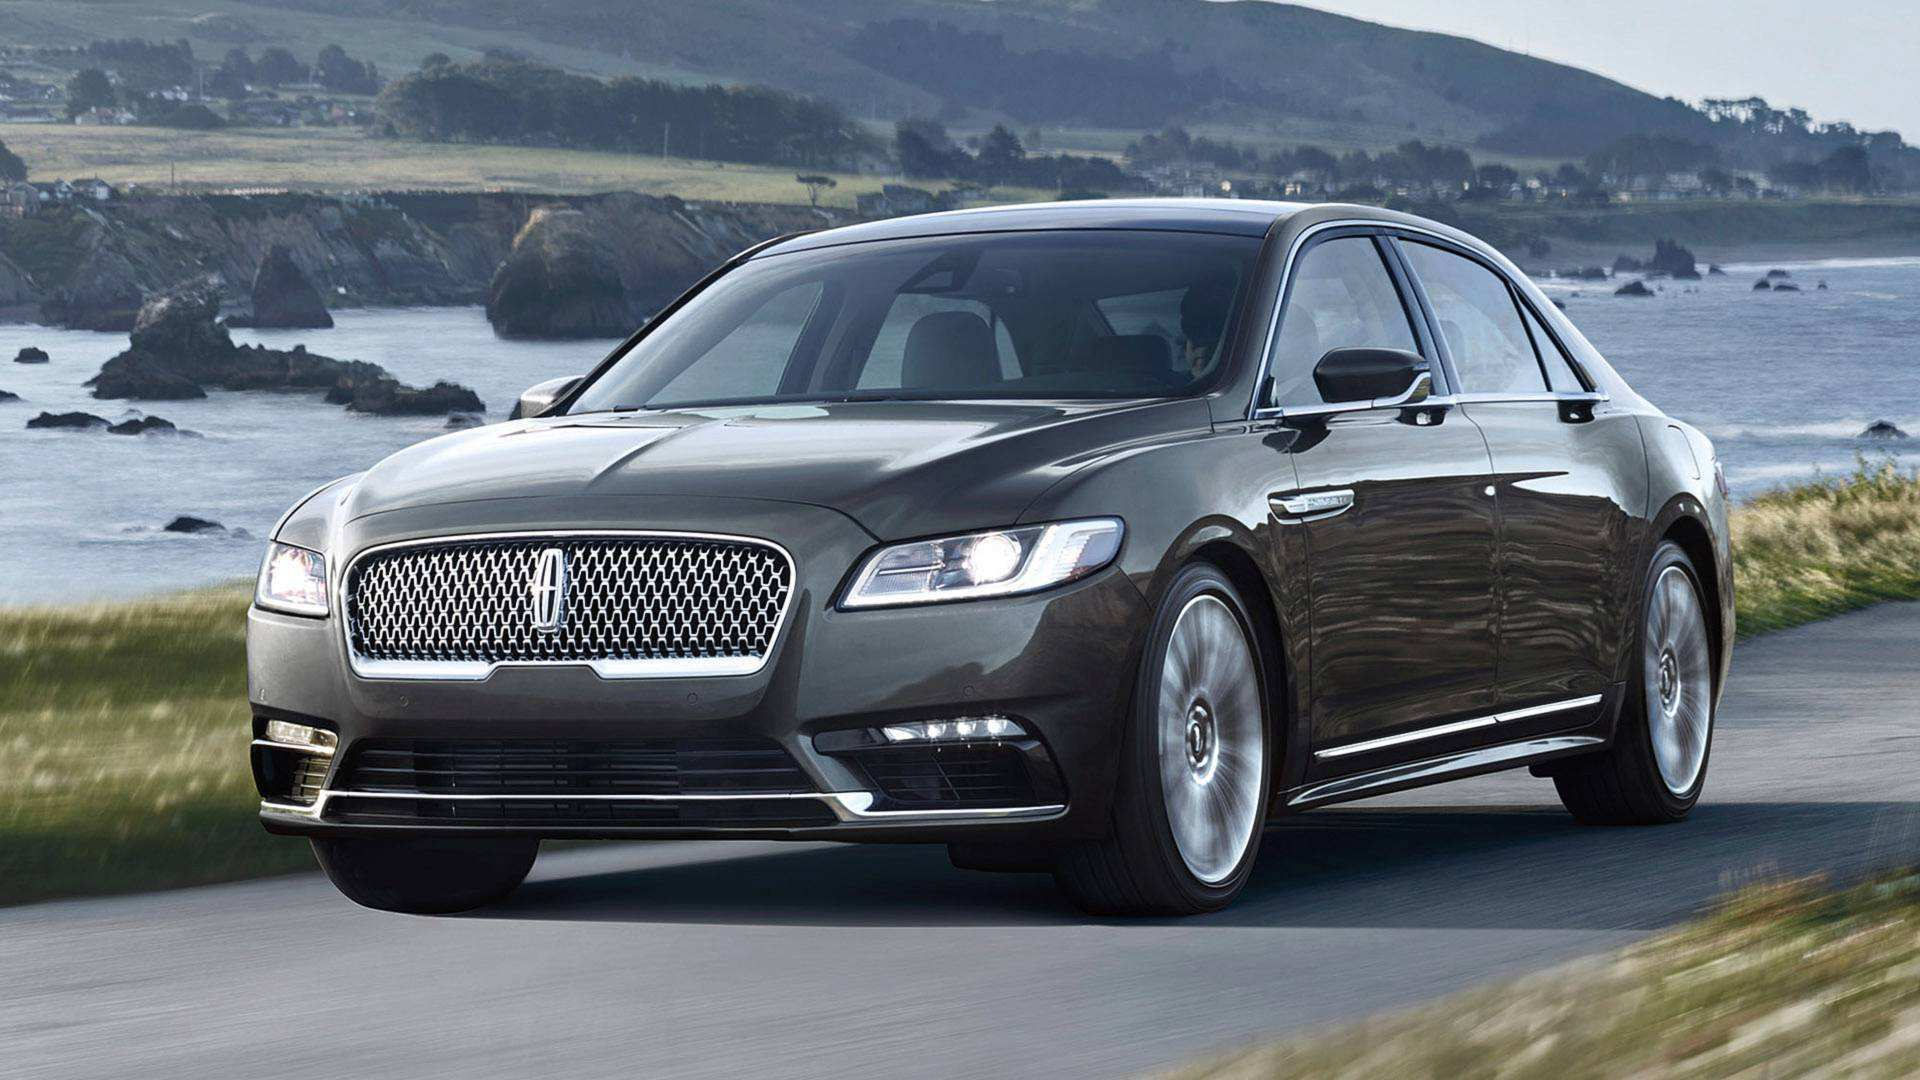 58 Best Review 2020 Lincoln MKZ Exterior and Interior for 2020 Lincoln MKZ